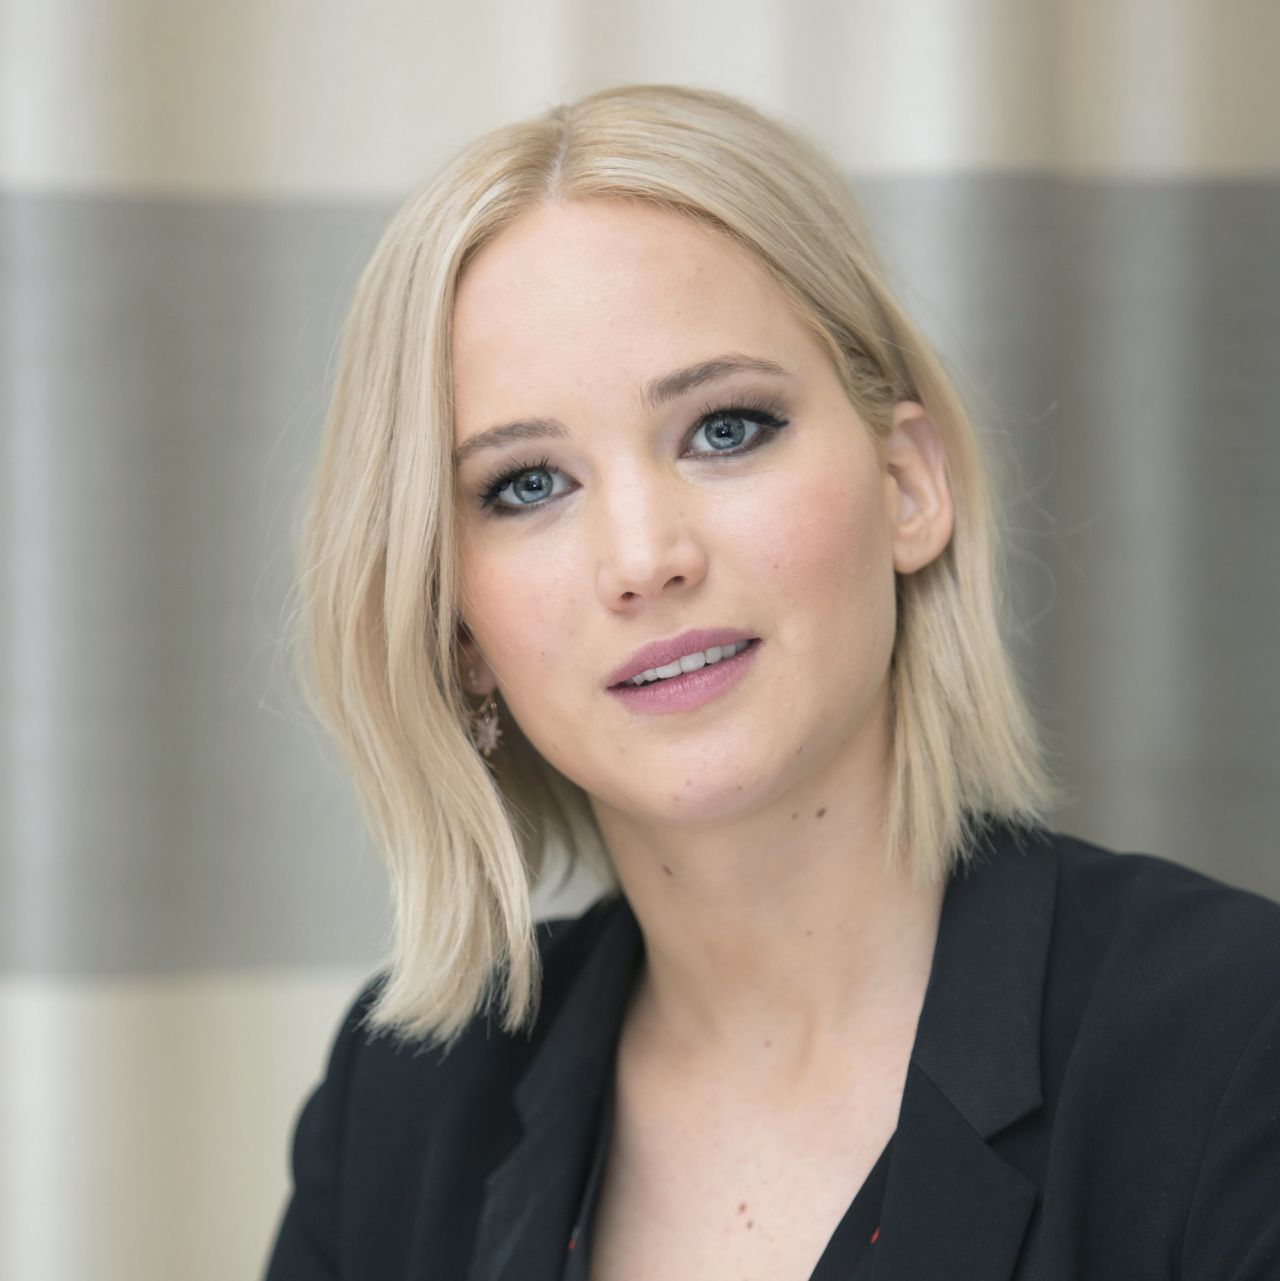 Jennifer Lawrence at THE HUNGER GAMES: MOCKINGJAY u00adPART 2 ...